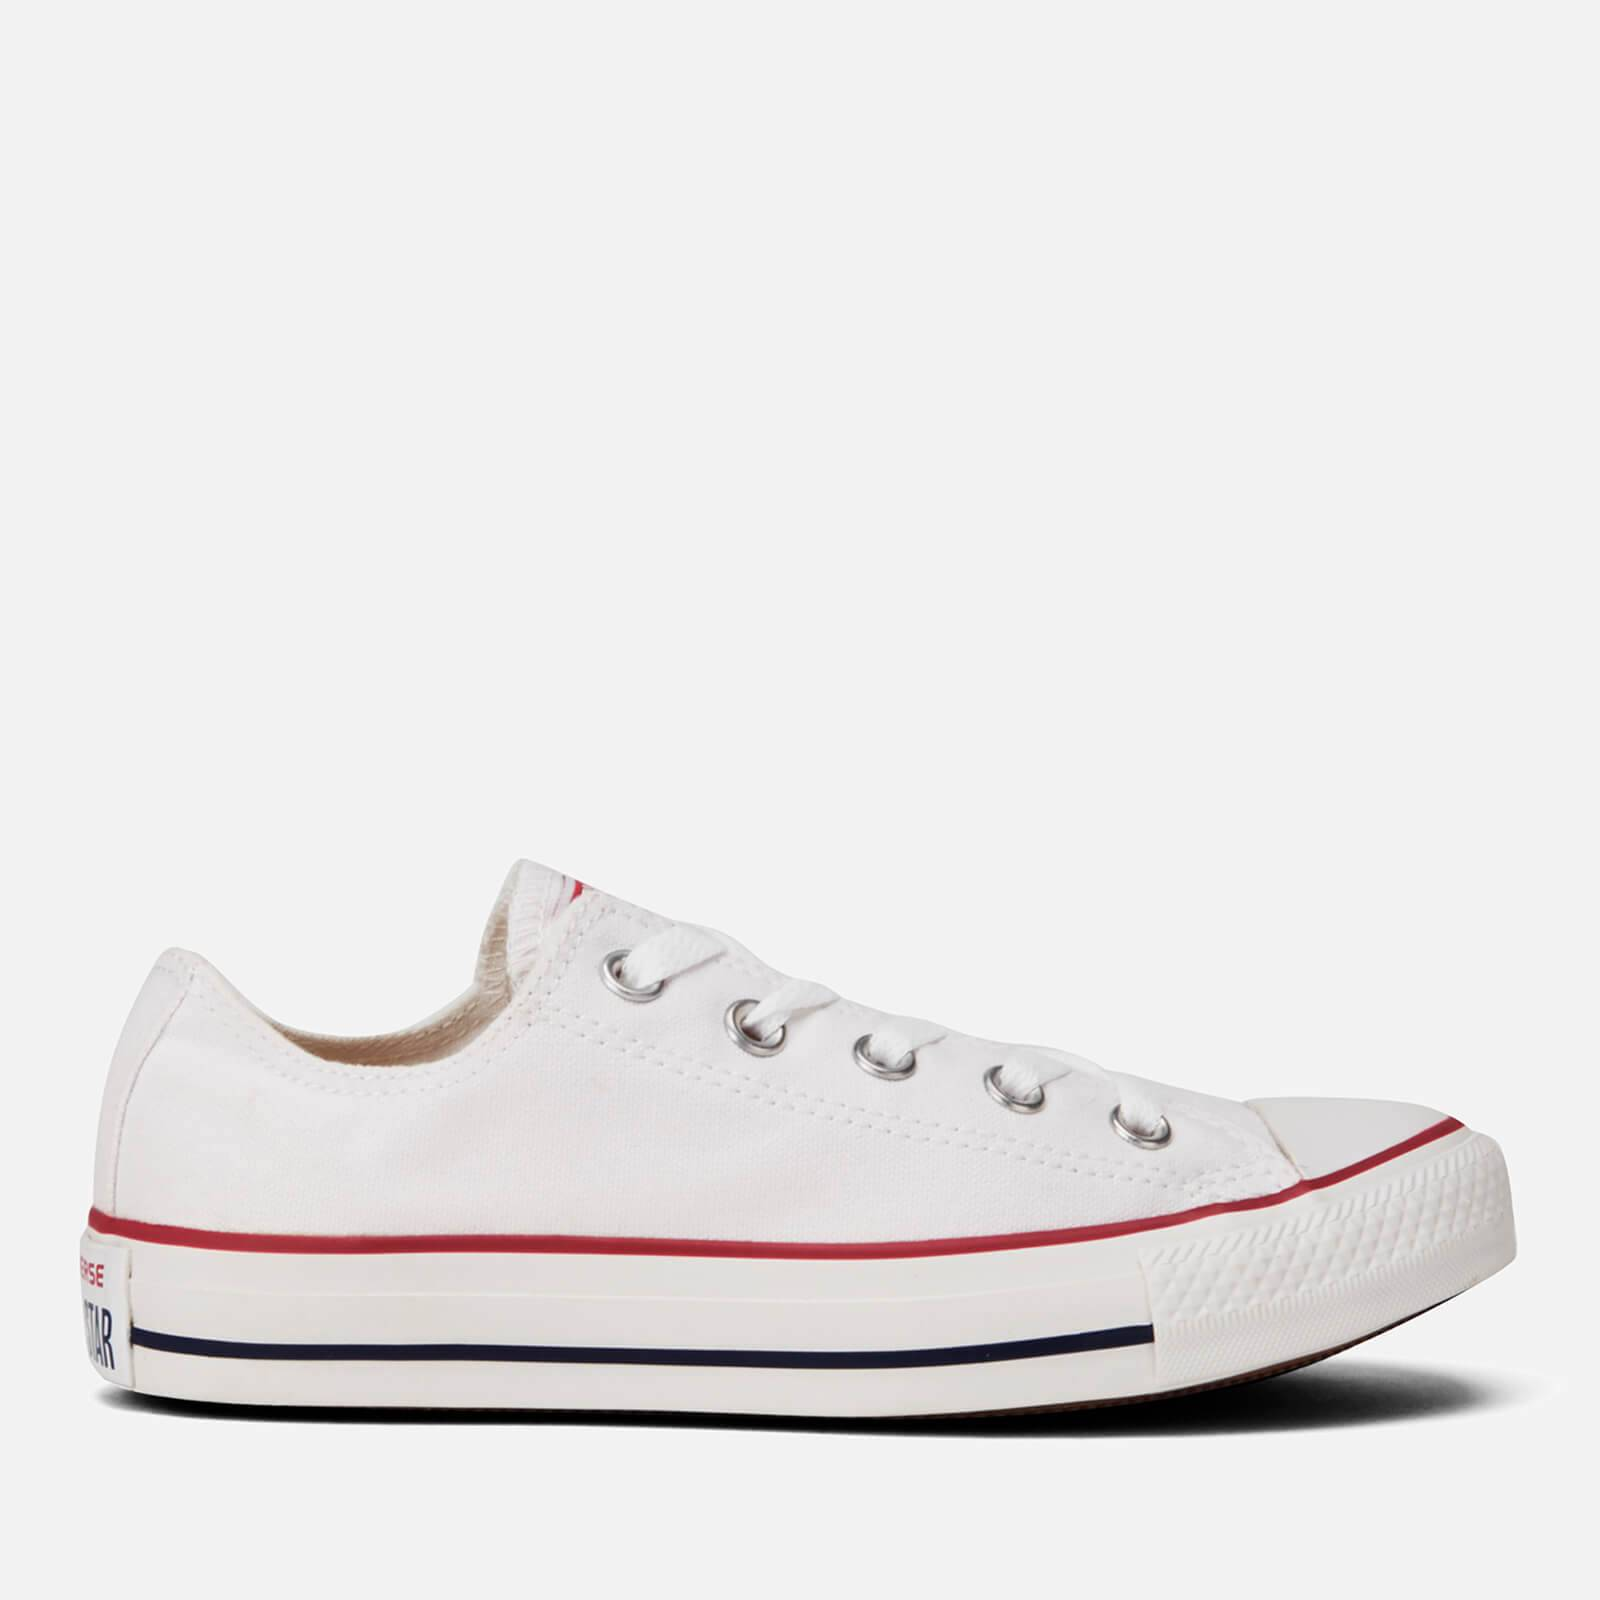 Converse Chuck Taylor All Star Ox Trainers - Optical White - UK 8